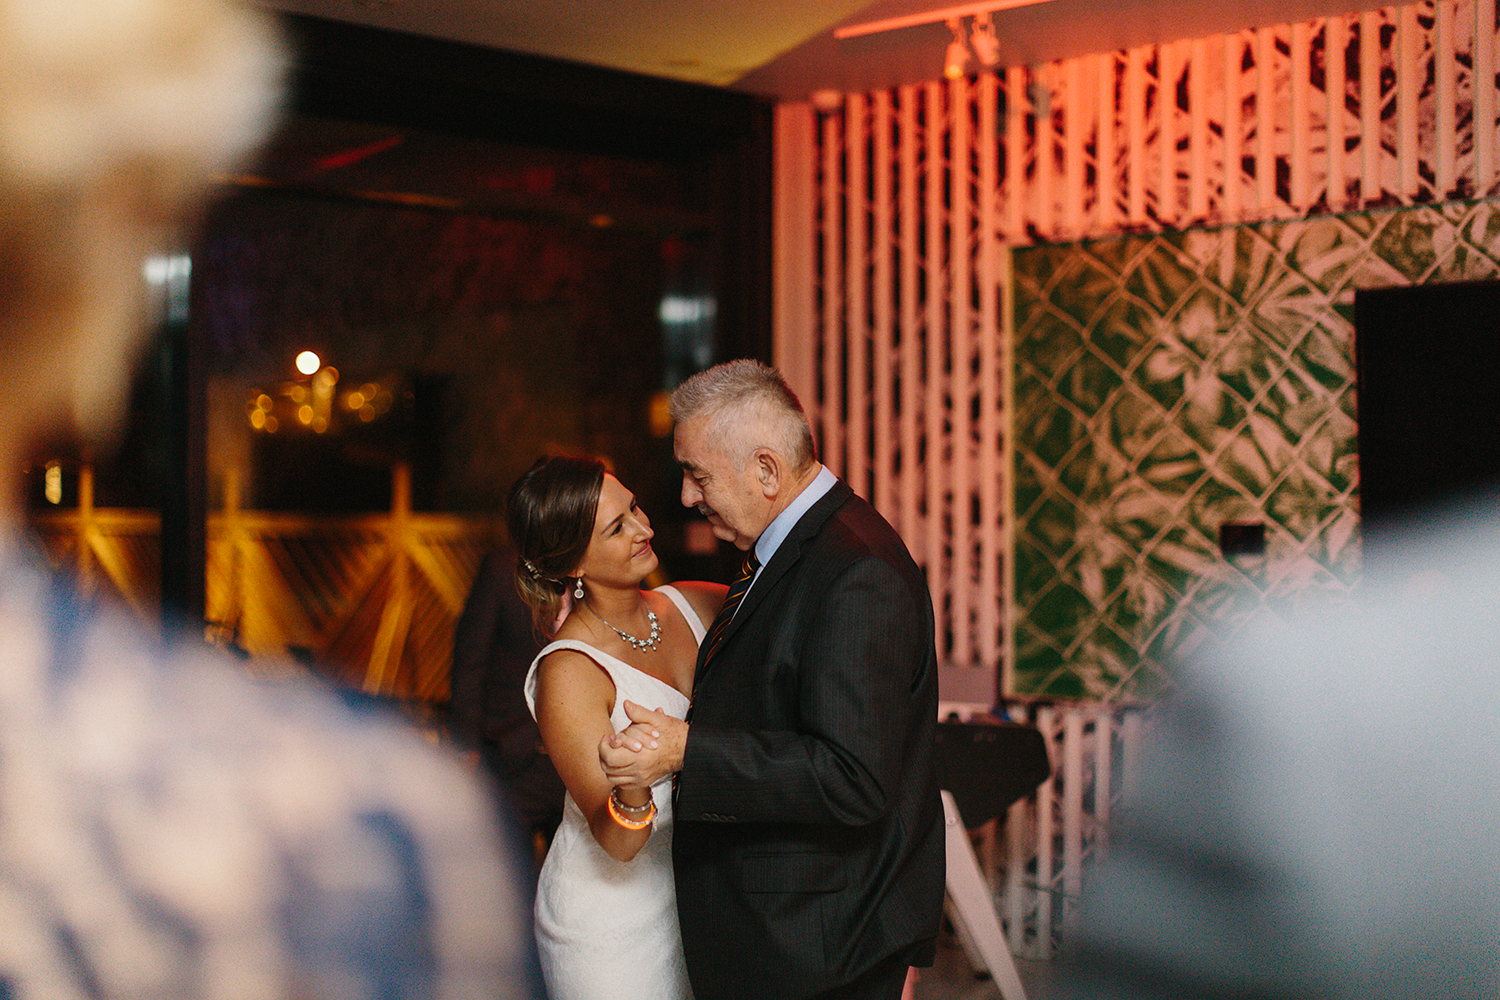 Prince-Edward-County-Wedding-Photographer-Drake-Devonshire-Elopement-Ryanne-Hollies-Photography-junebug-weddings-best-of-the-best-reception-glassbox-bride-and-dad.jpg